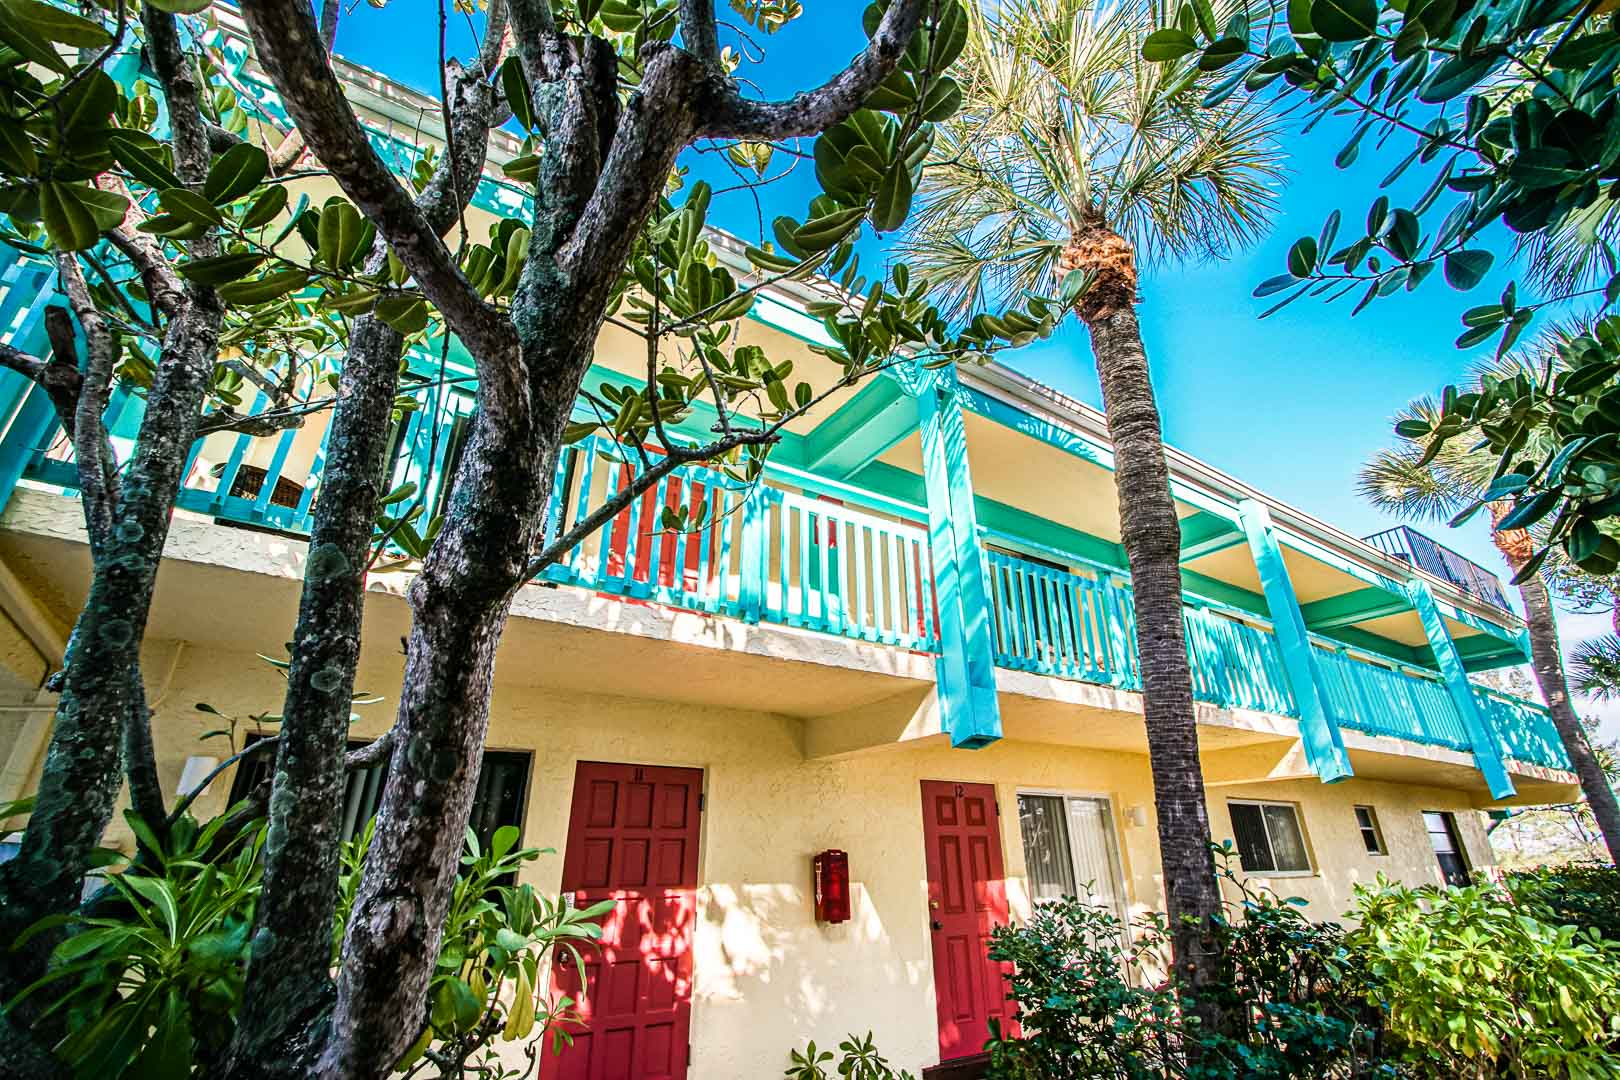 A colorful outside view at VRI's Sand Dune Shores in Florida.